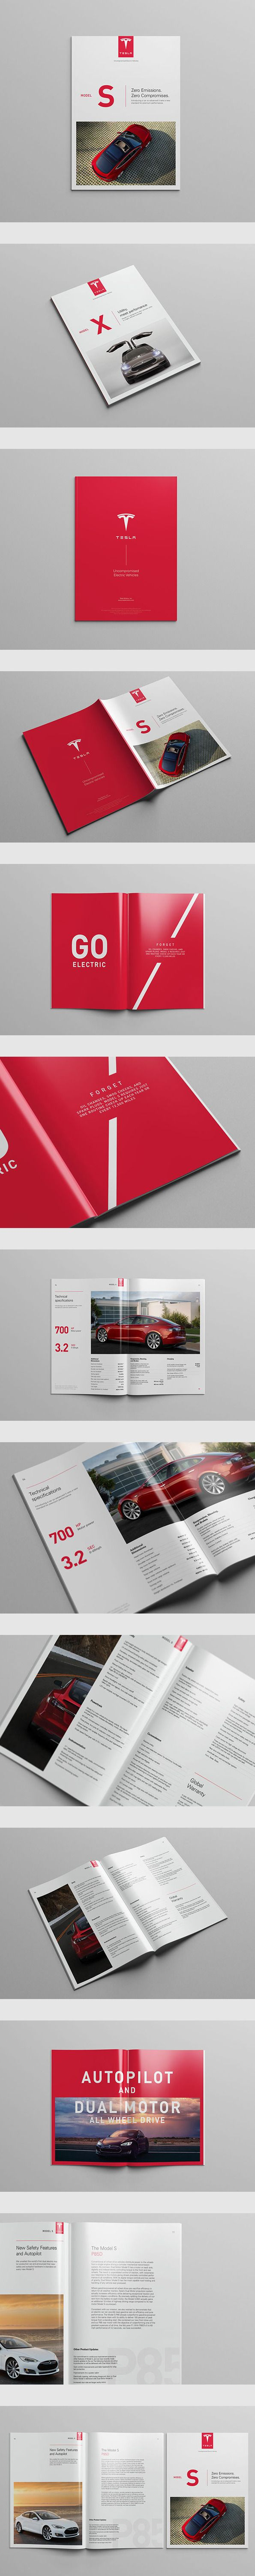 Tesla Model S Catalog by Serge Mistyukevych